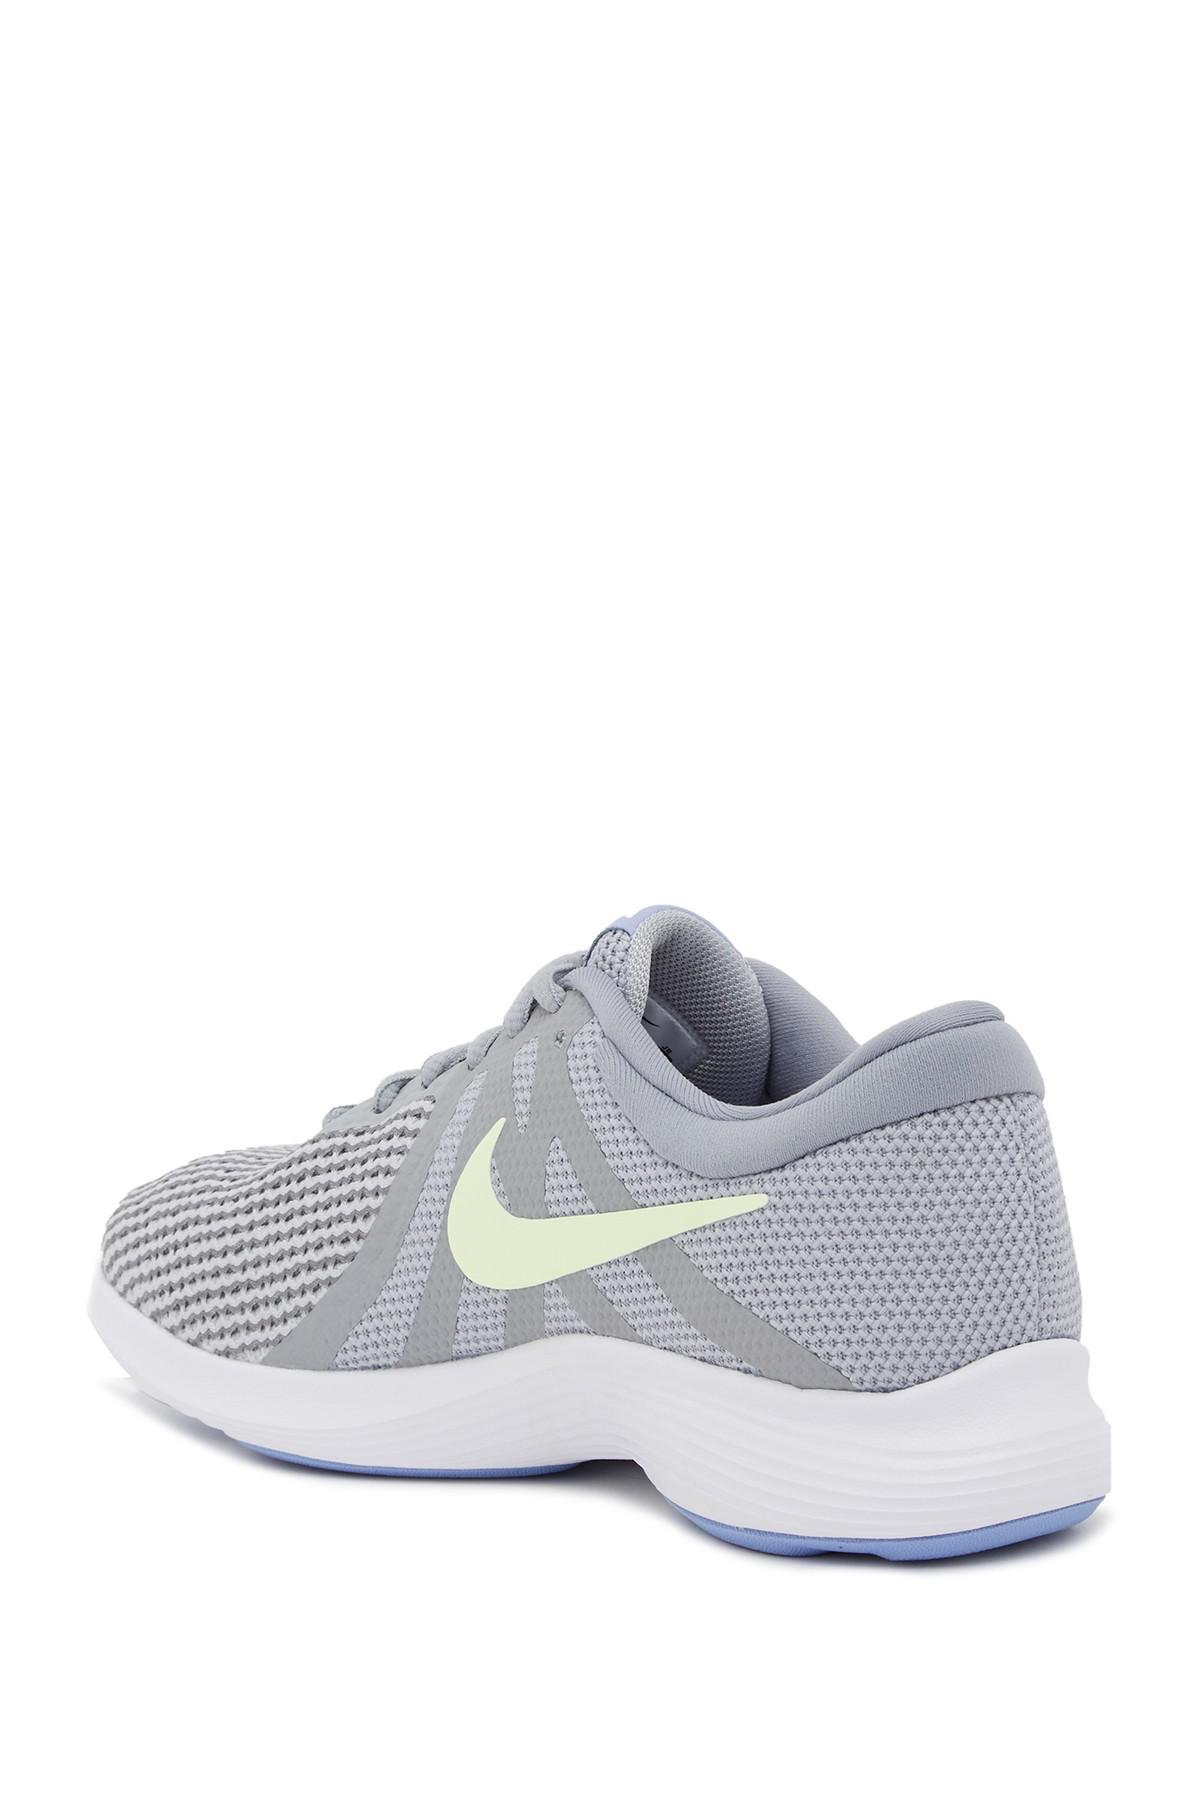 cheaper 3bf6f cfd84 Nike - Multicolor Revolution 4 Running Sneaker - Lyst. View fullscreen